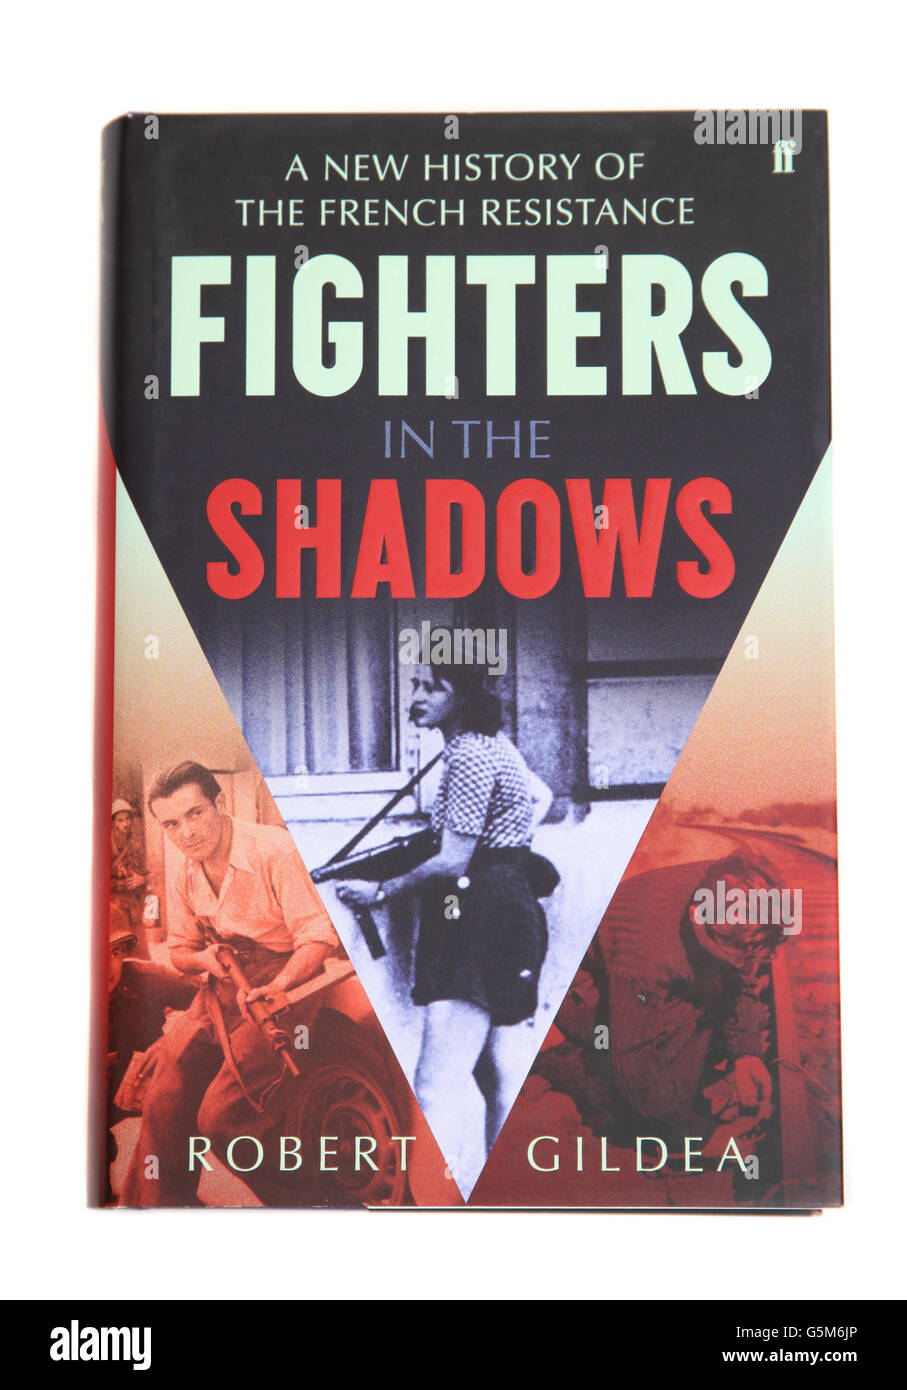 The book - A New History of The French Resistance Fighters in the Shadows by Robert Gildea. - Stock Image